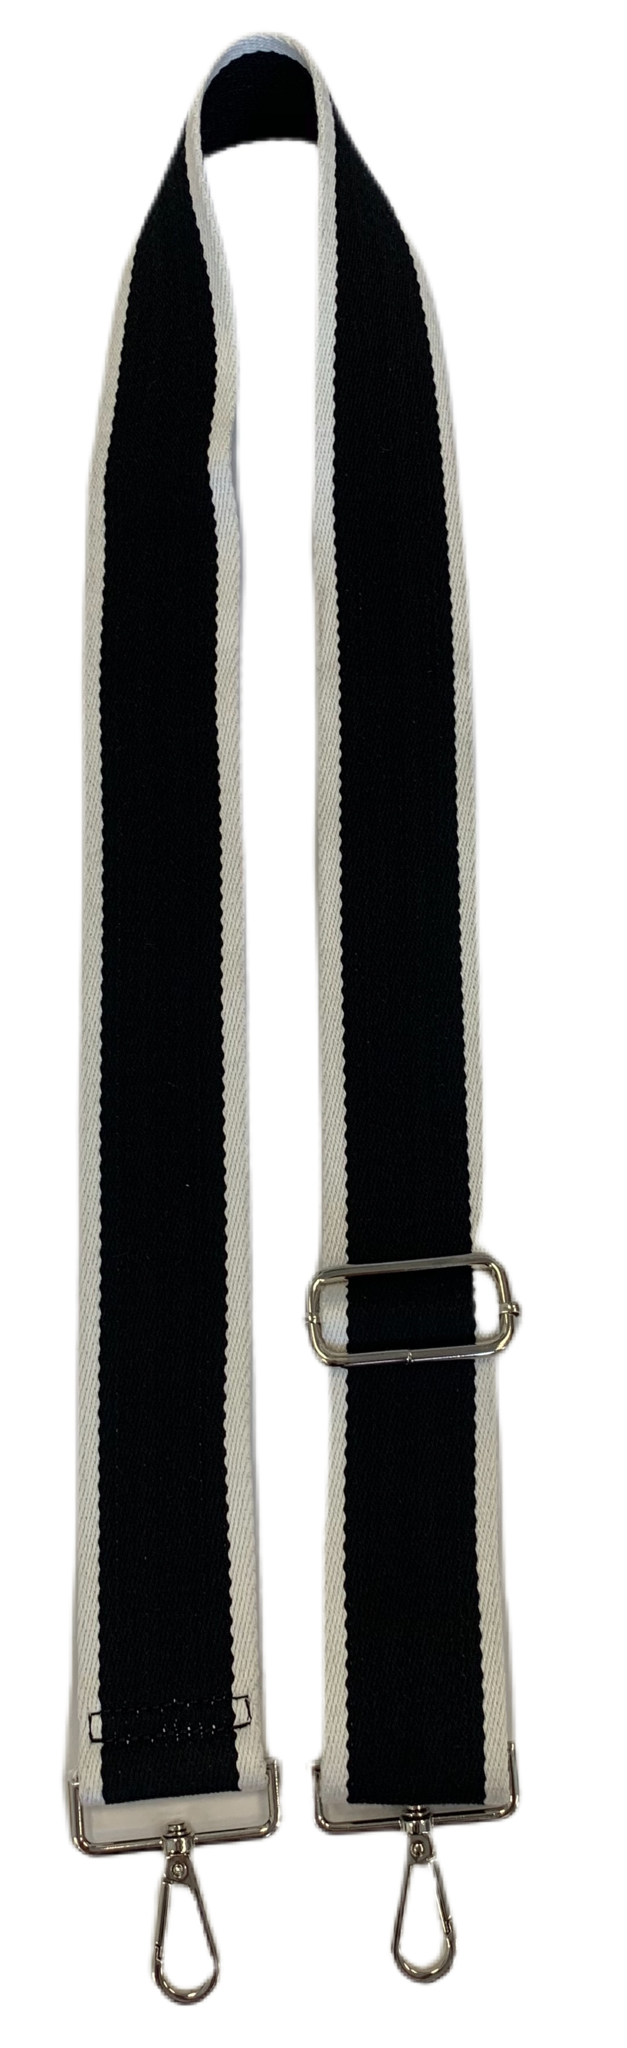 Black & White Striped Strap